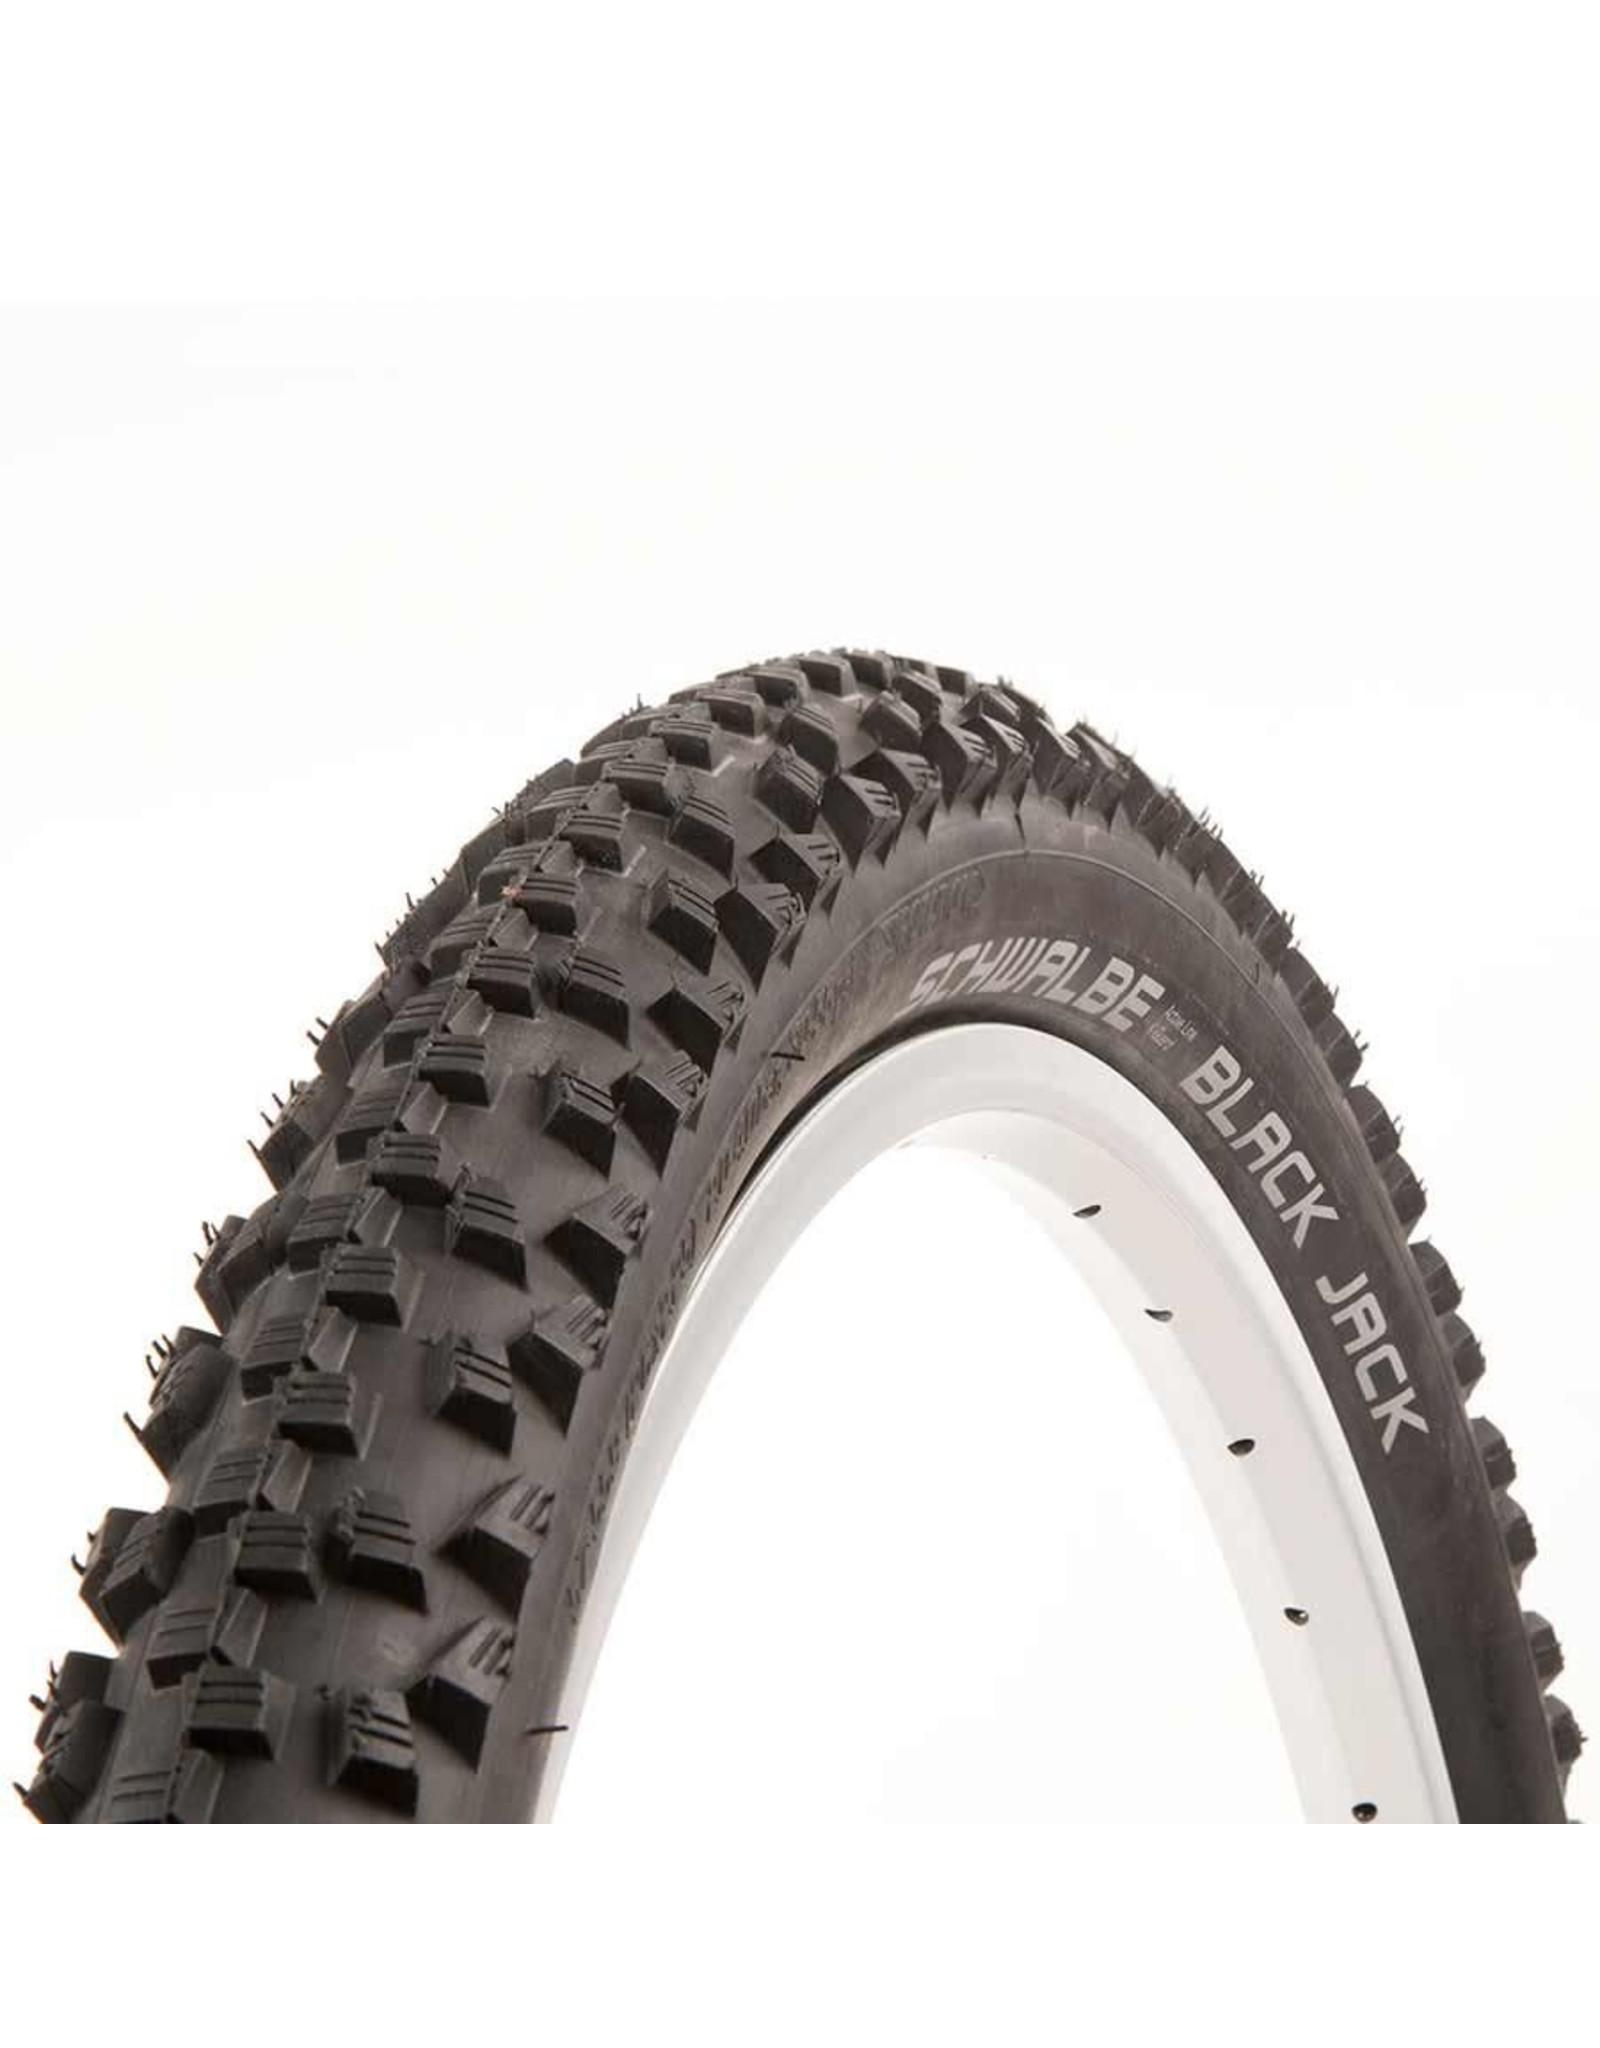 Schwalbe, Black Jack, Pneu, 26''x2.10, Rigide, Tringle, SBC, K-Guard, 50TPI, Noir